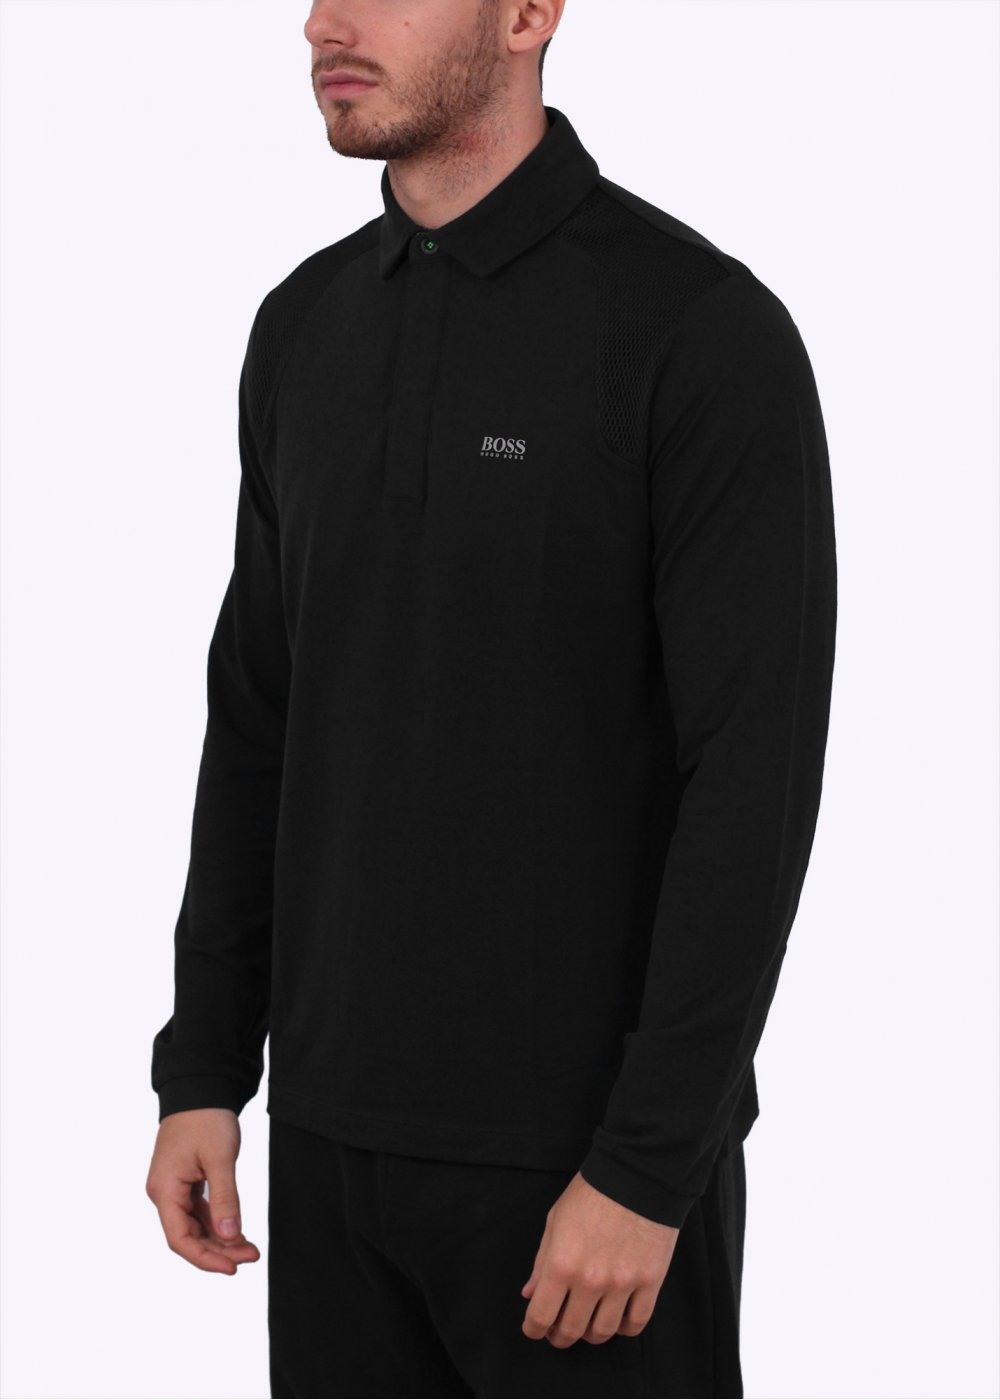 Hugo boss green pleesy 2 long sleeve polo sweat black for Hugo boss green polo shirt sale